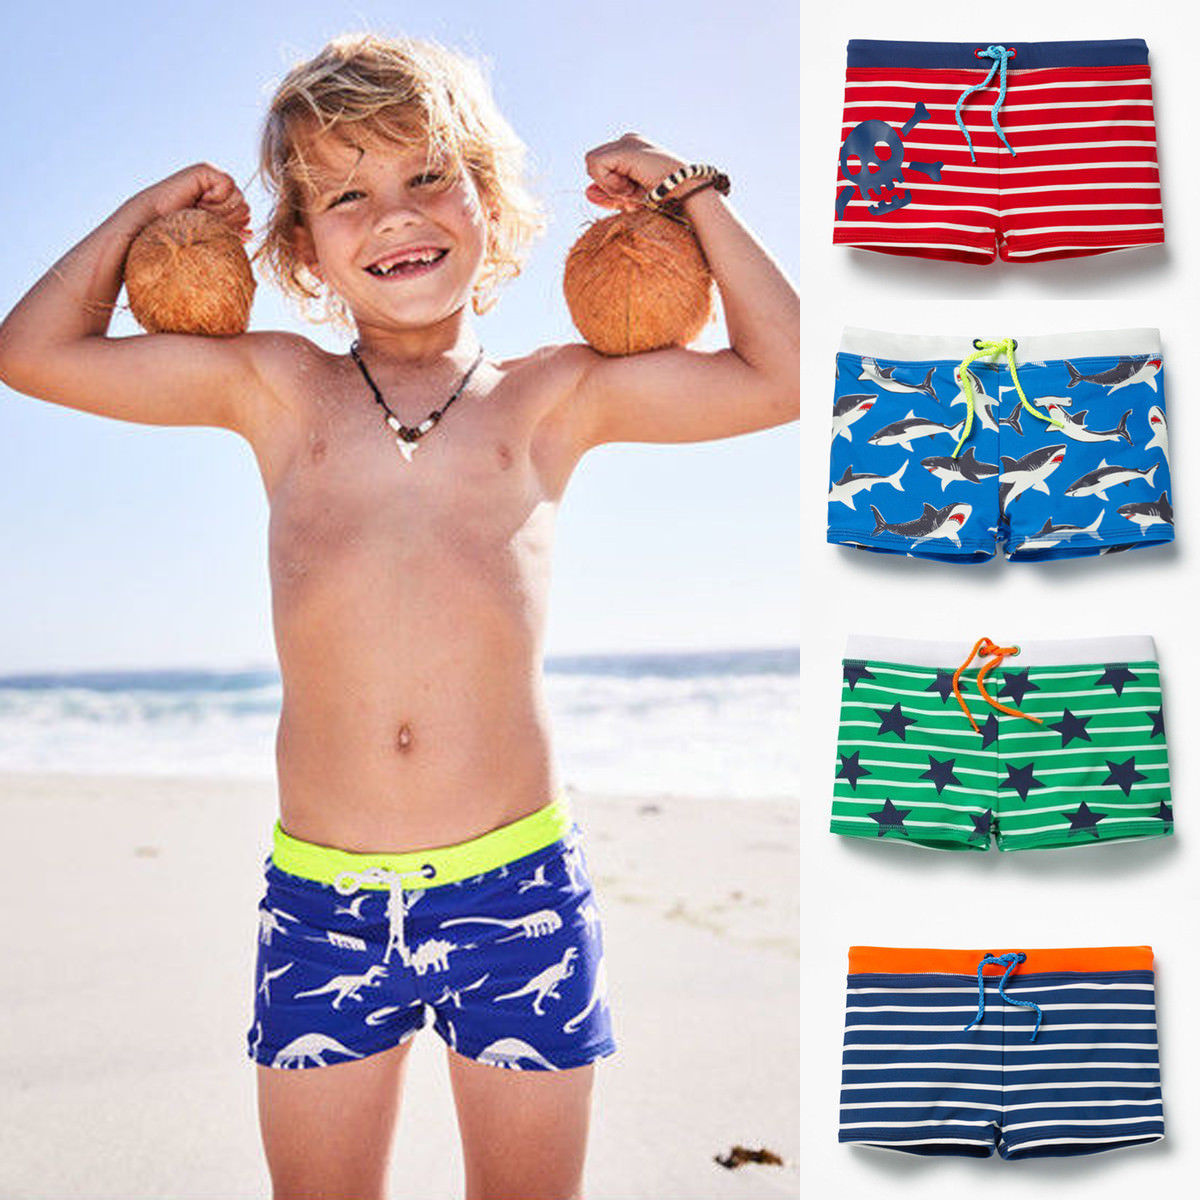 Toddler Boy Blue Striped Kid Swimming Shorts Swimwear - ChildAngle